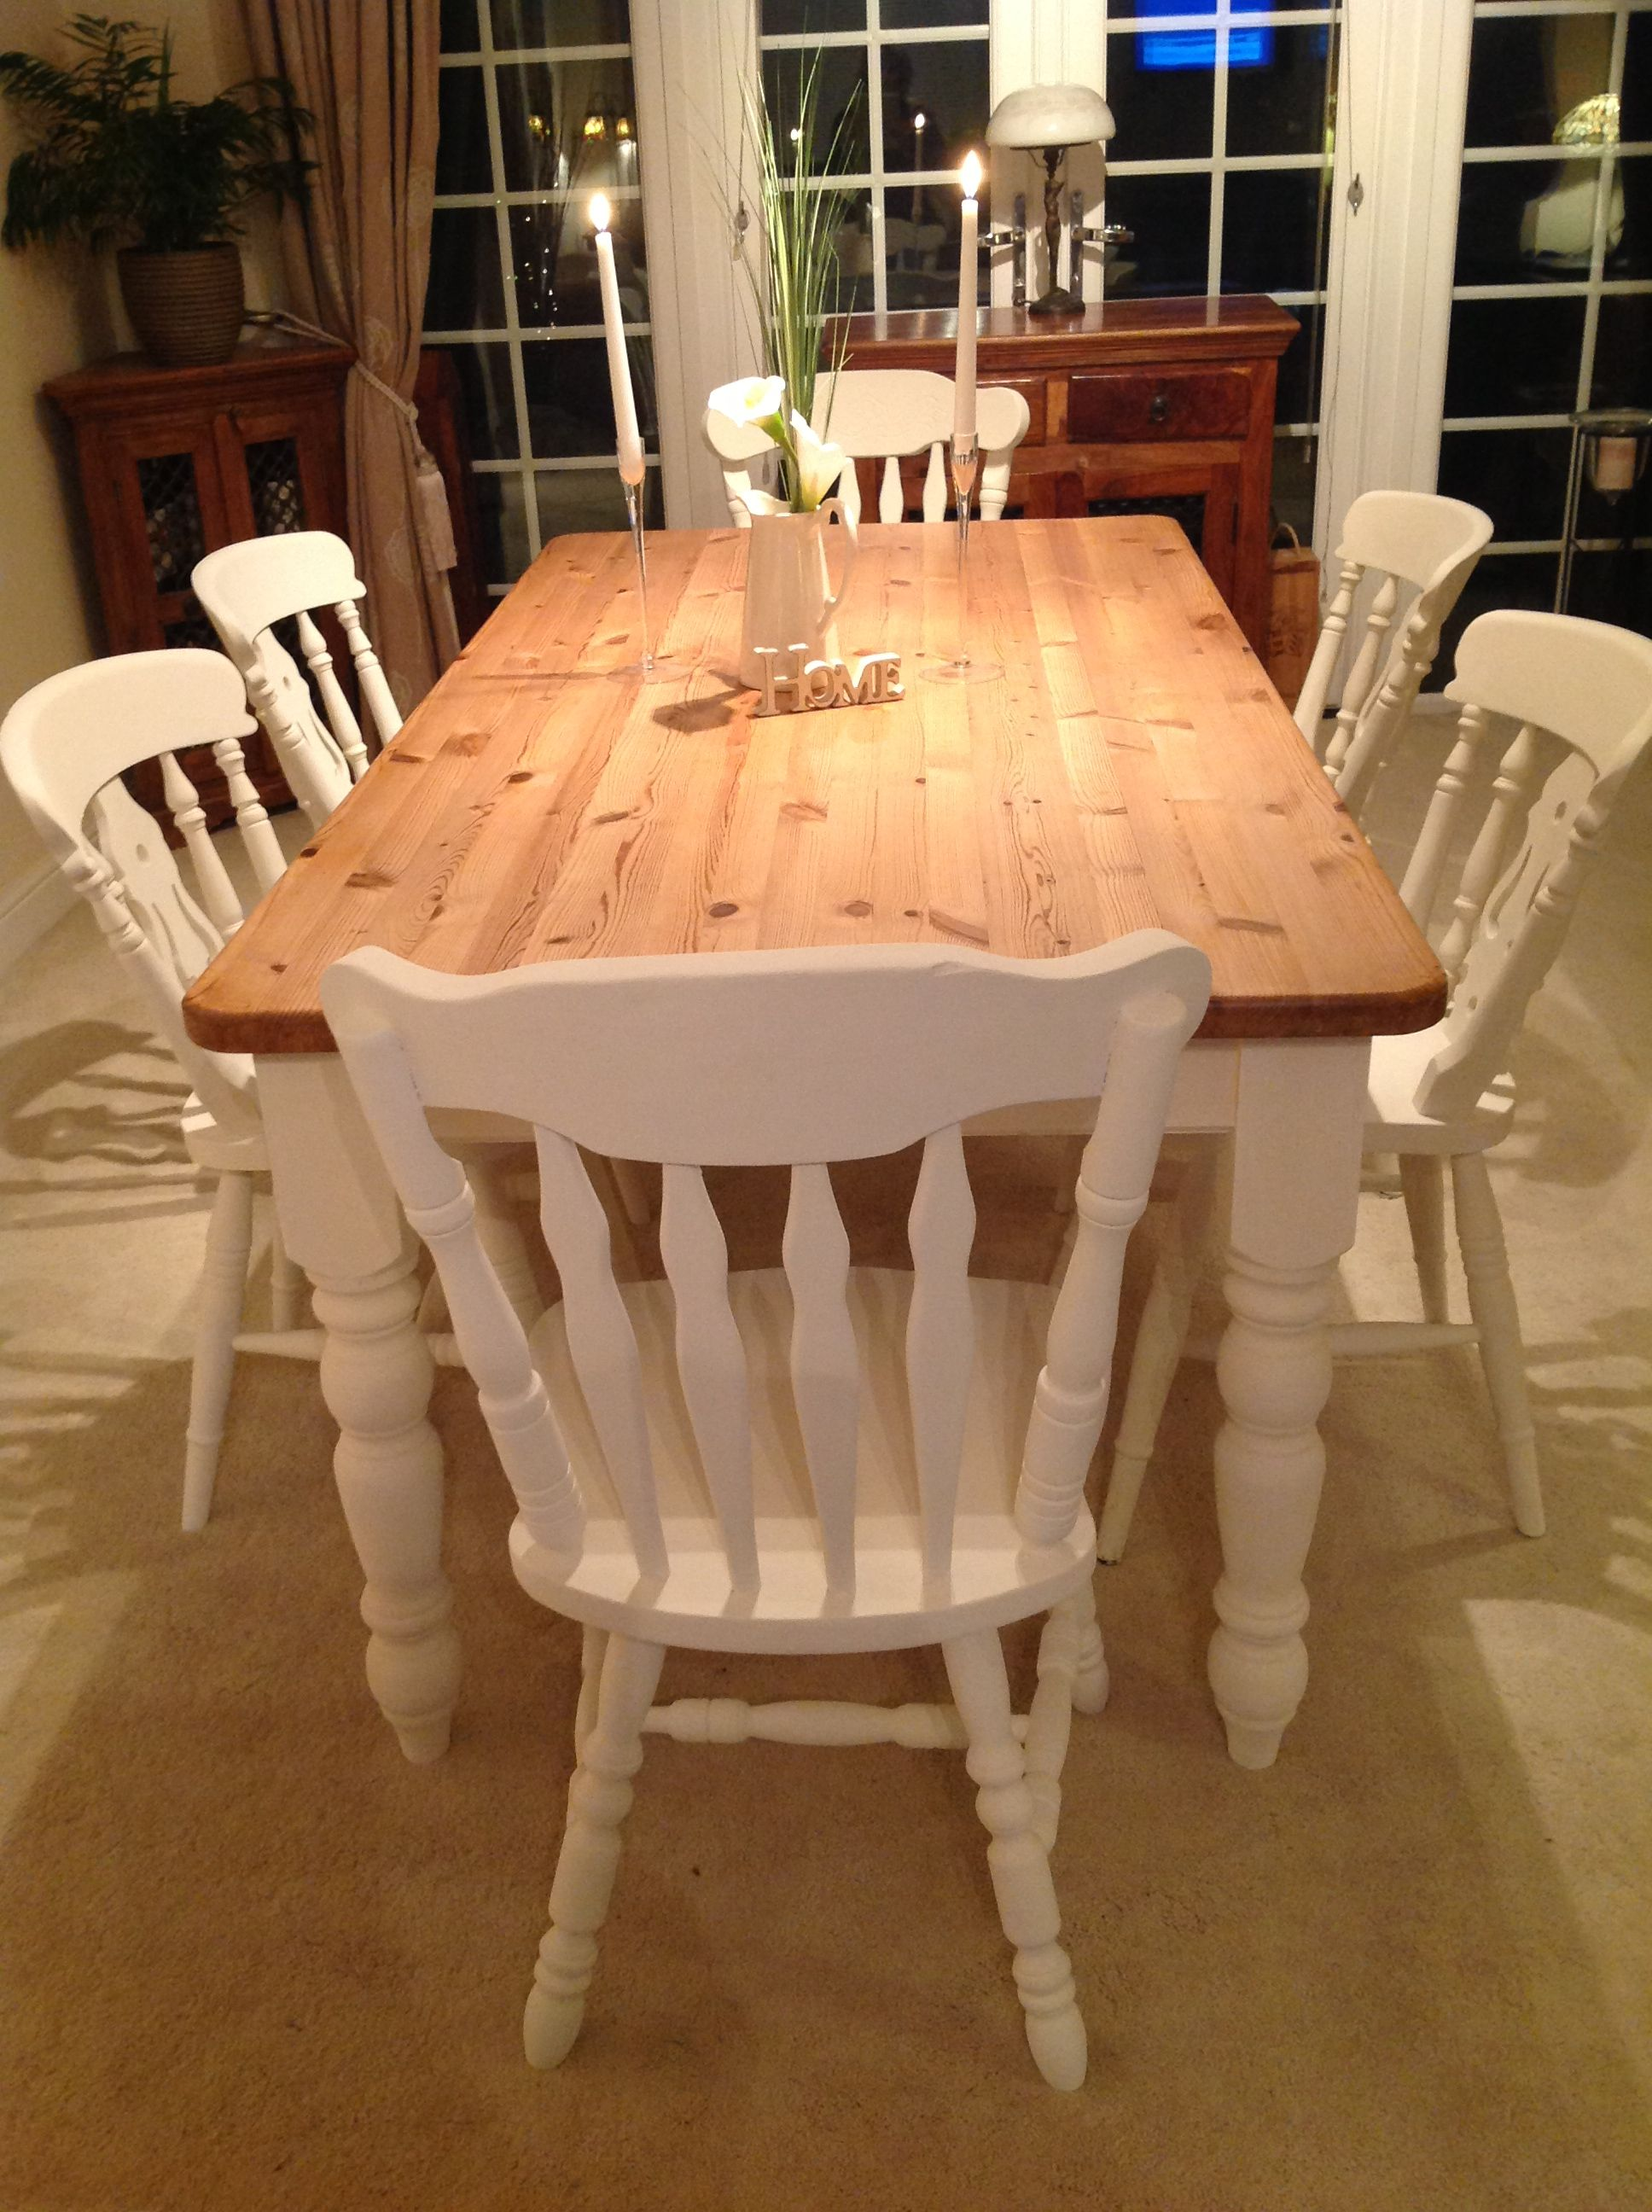 Farmhouse table and chairs painted in Annie Sloan old